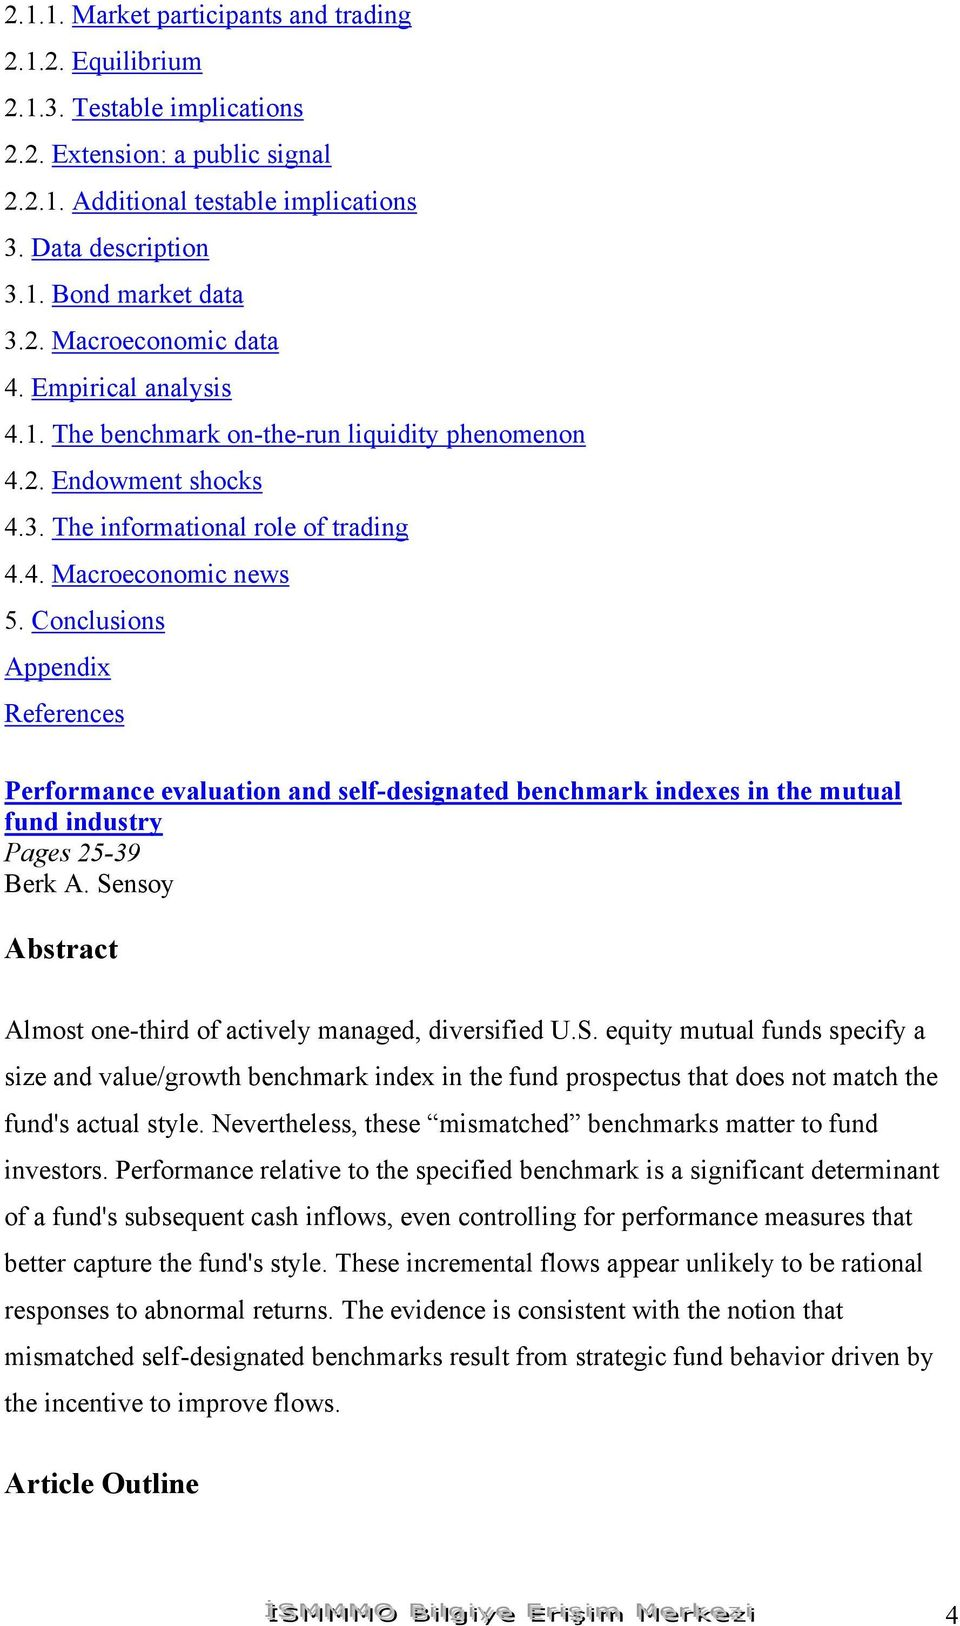 Conclusions Appendix Performance evaluation and self-designated benchmark indexes in the mutual fund industry Pages 25-39 Berk A. Se